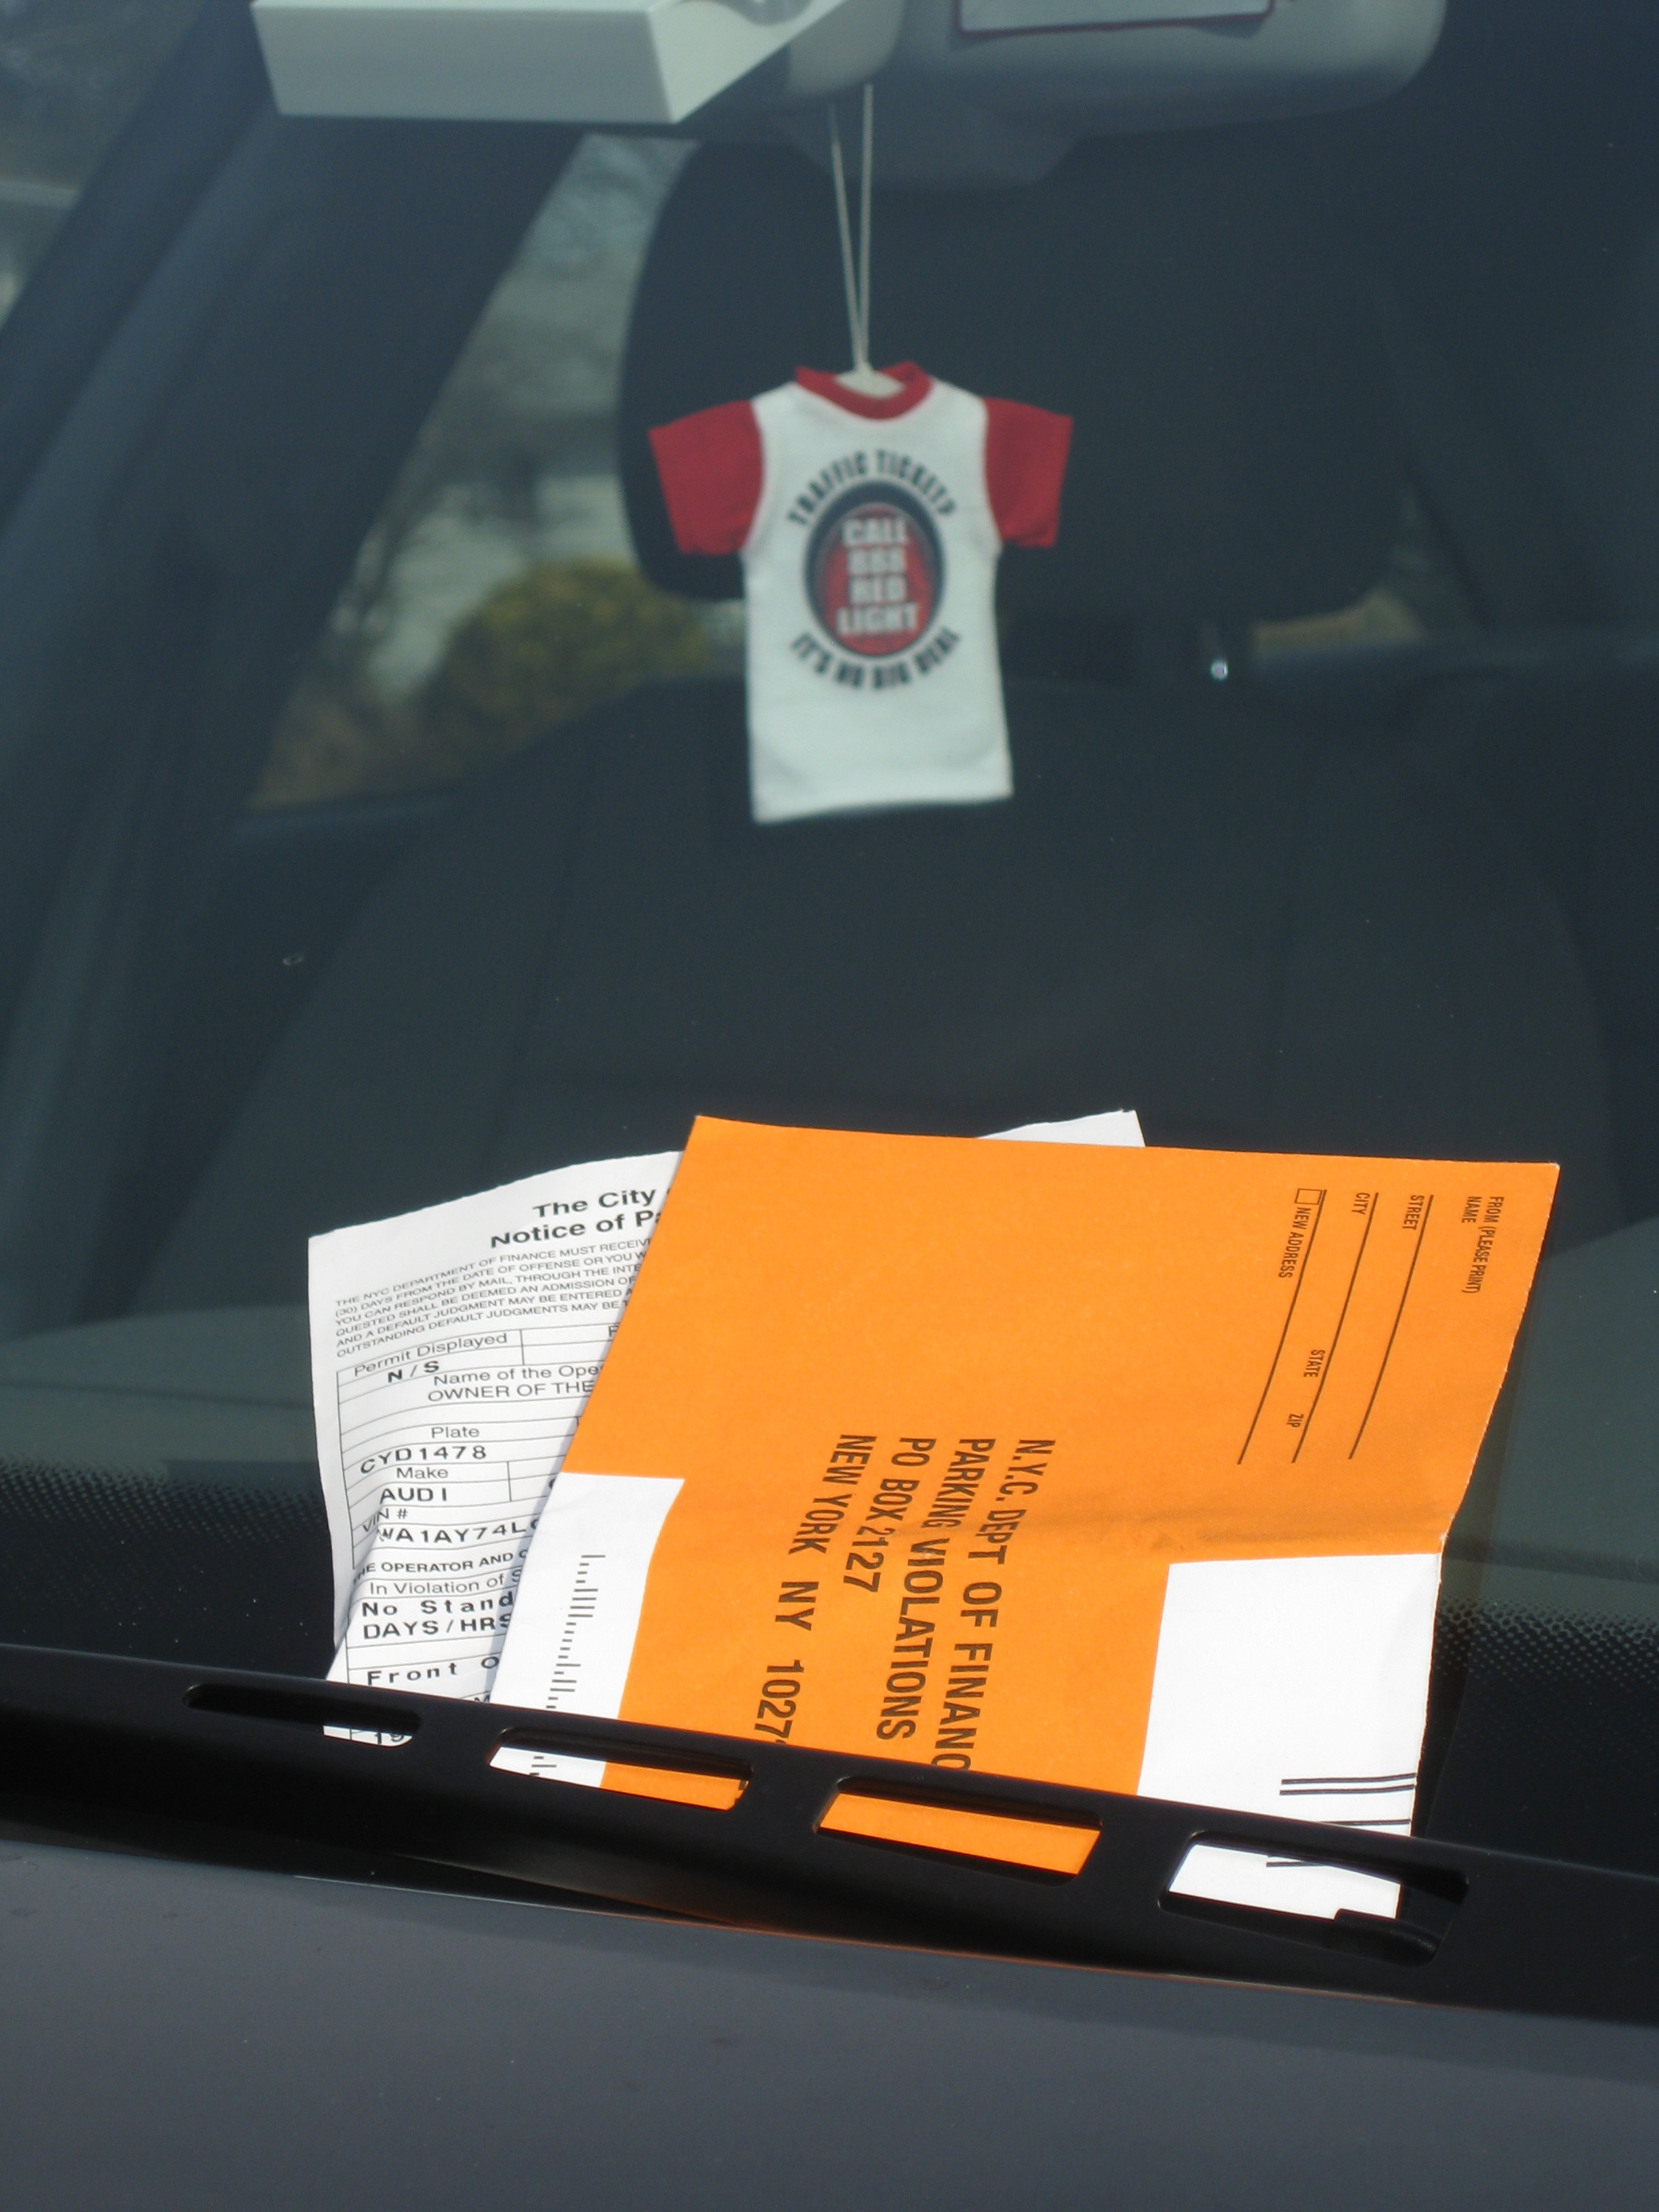 Fine Calgary photo radar ticket payment